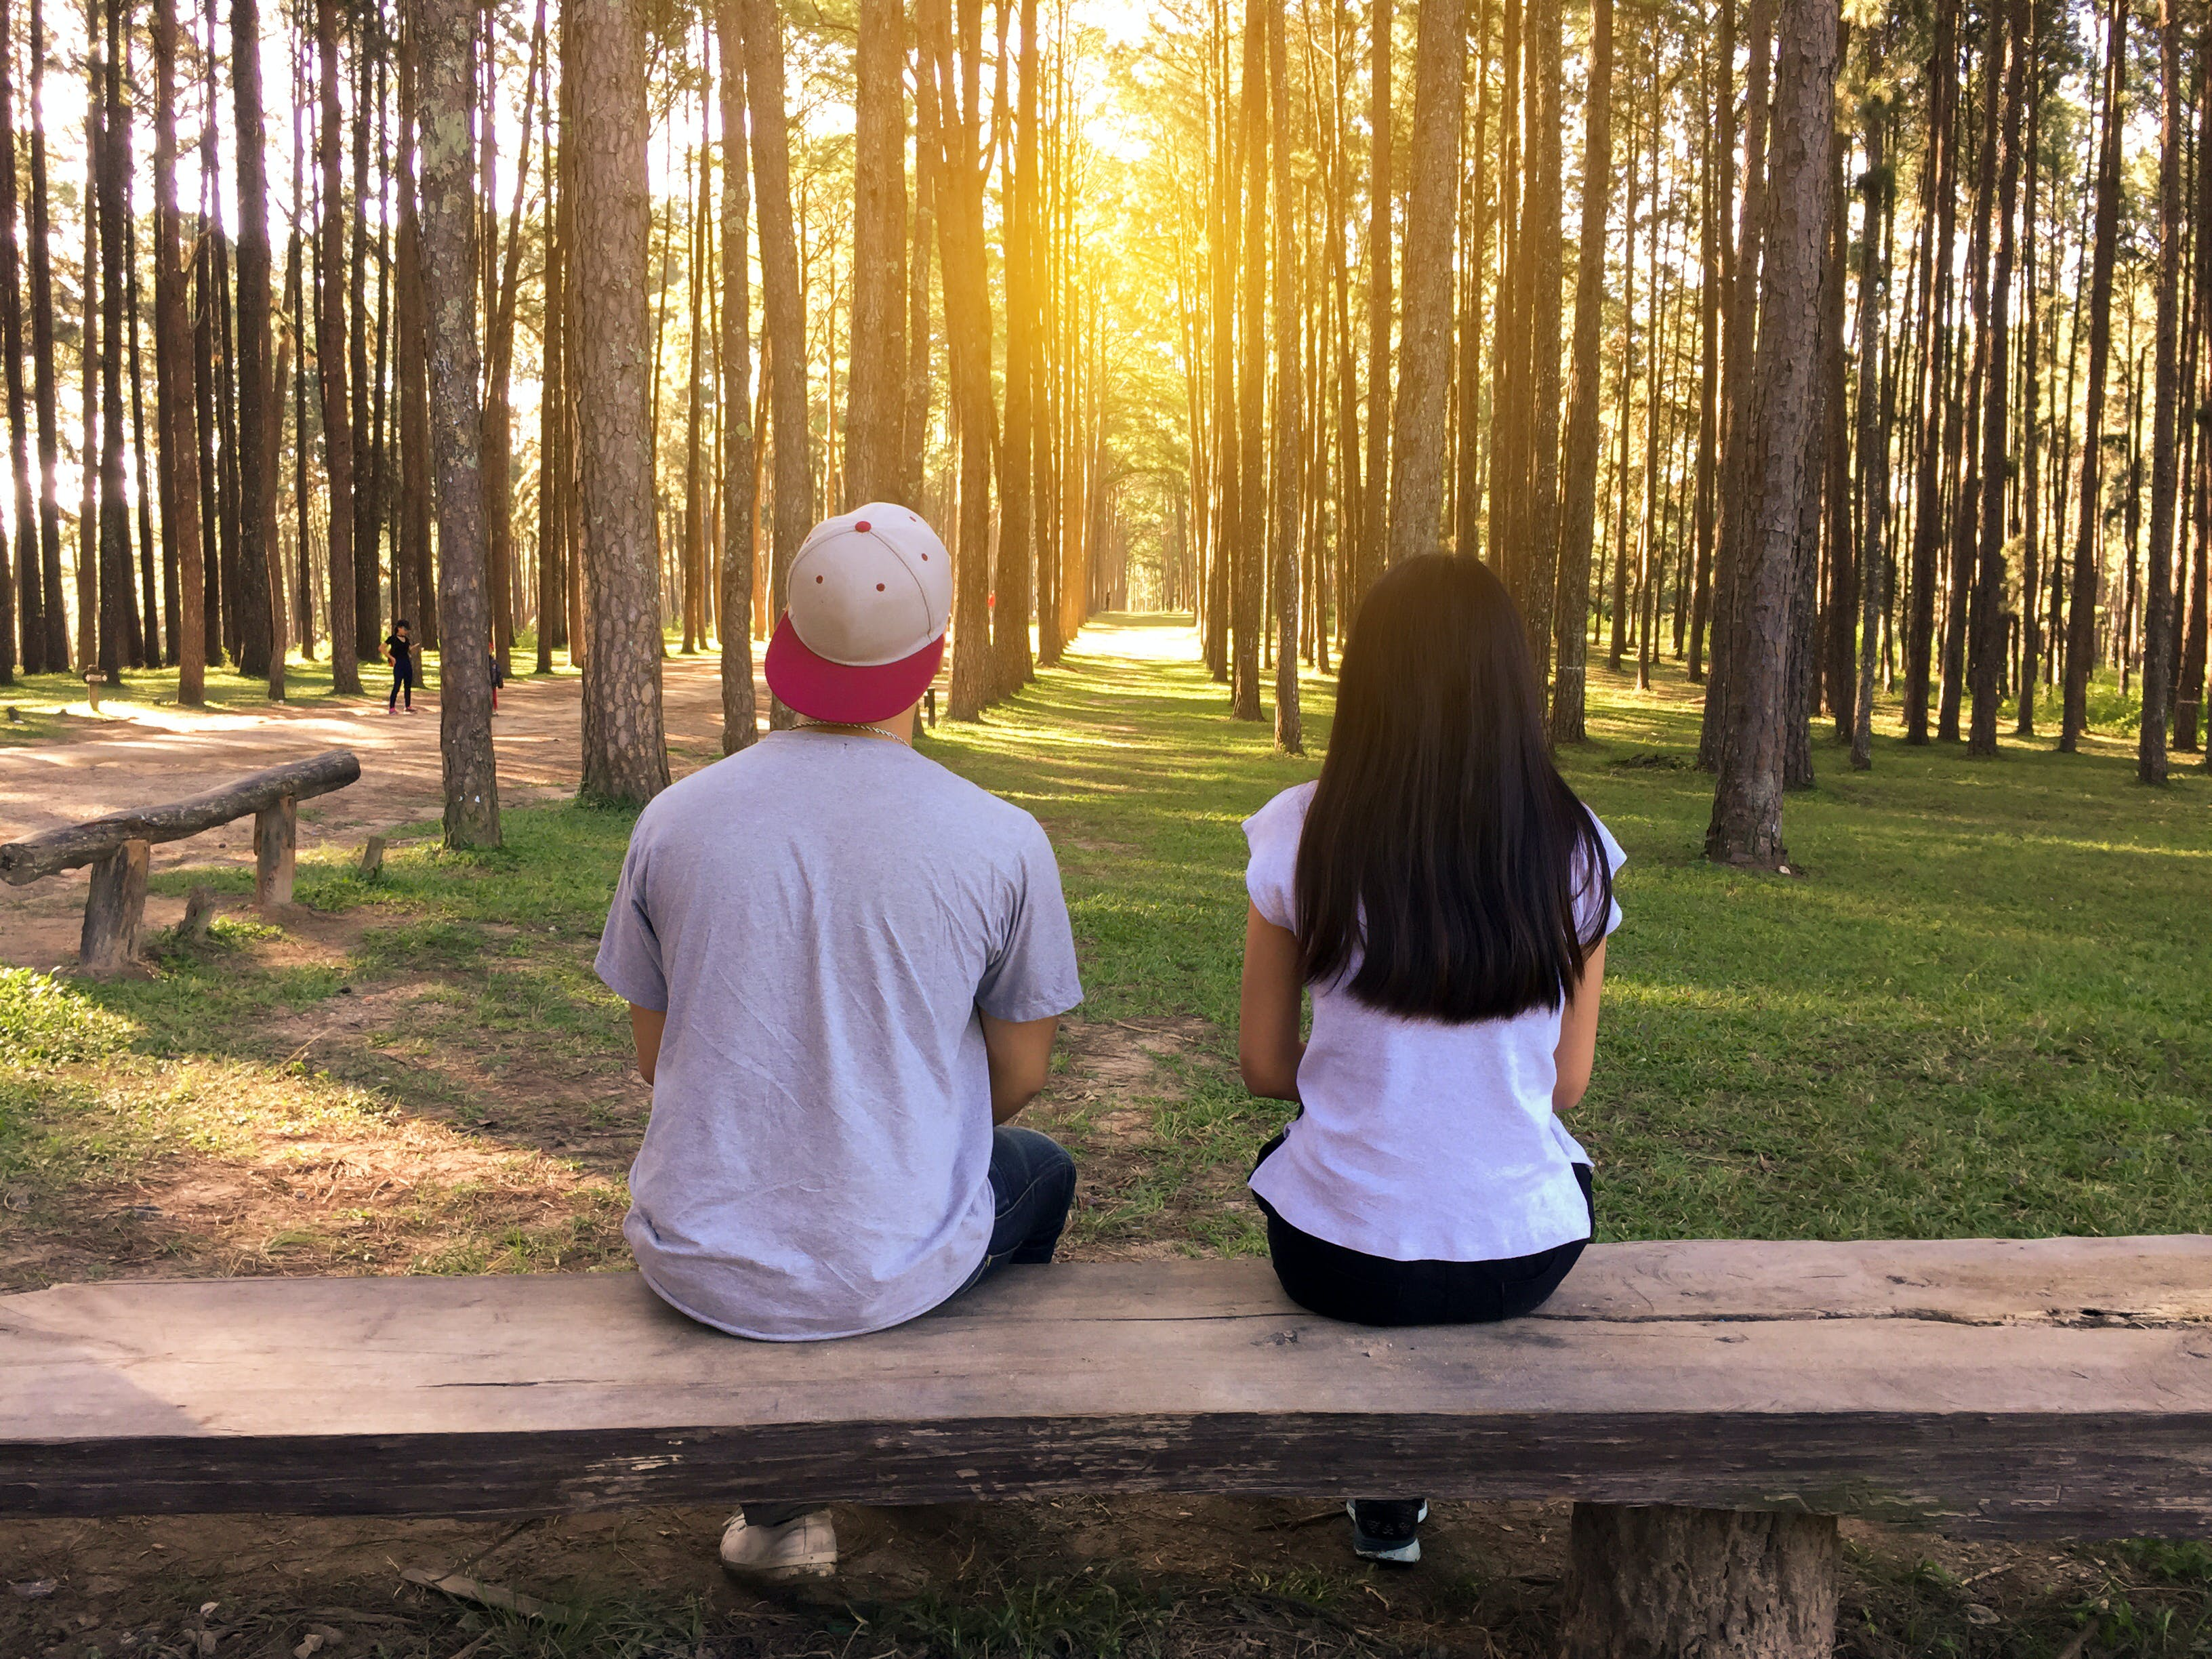 Man and Woman Sitting on Bench in Woods